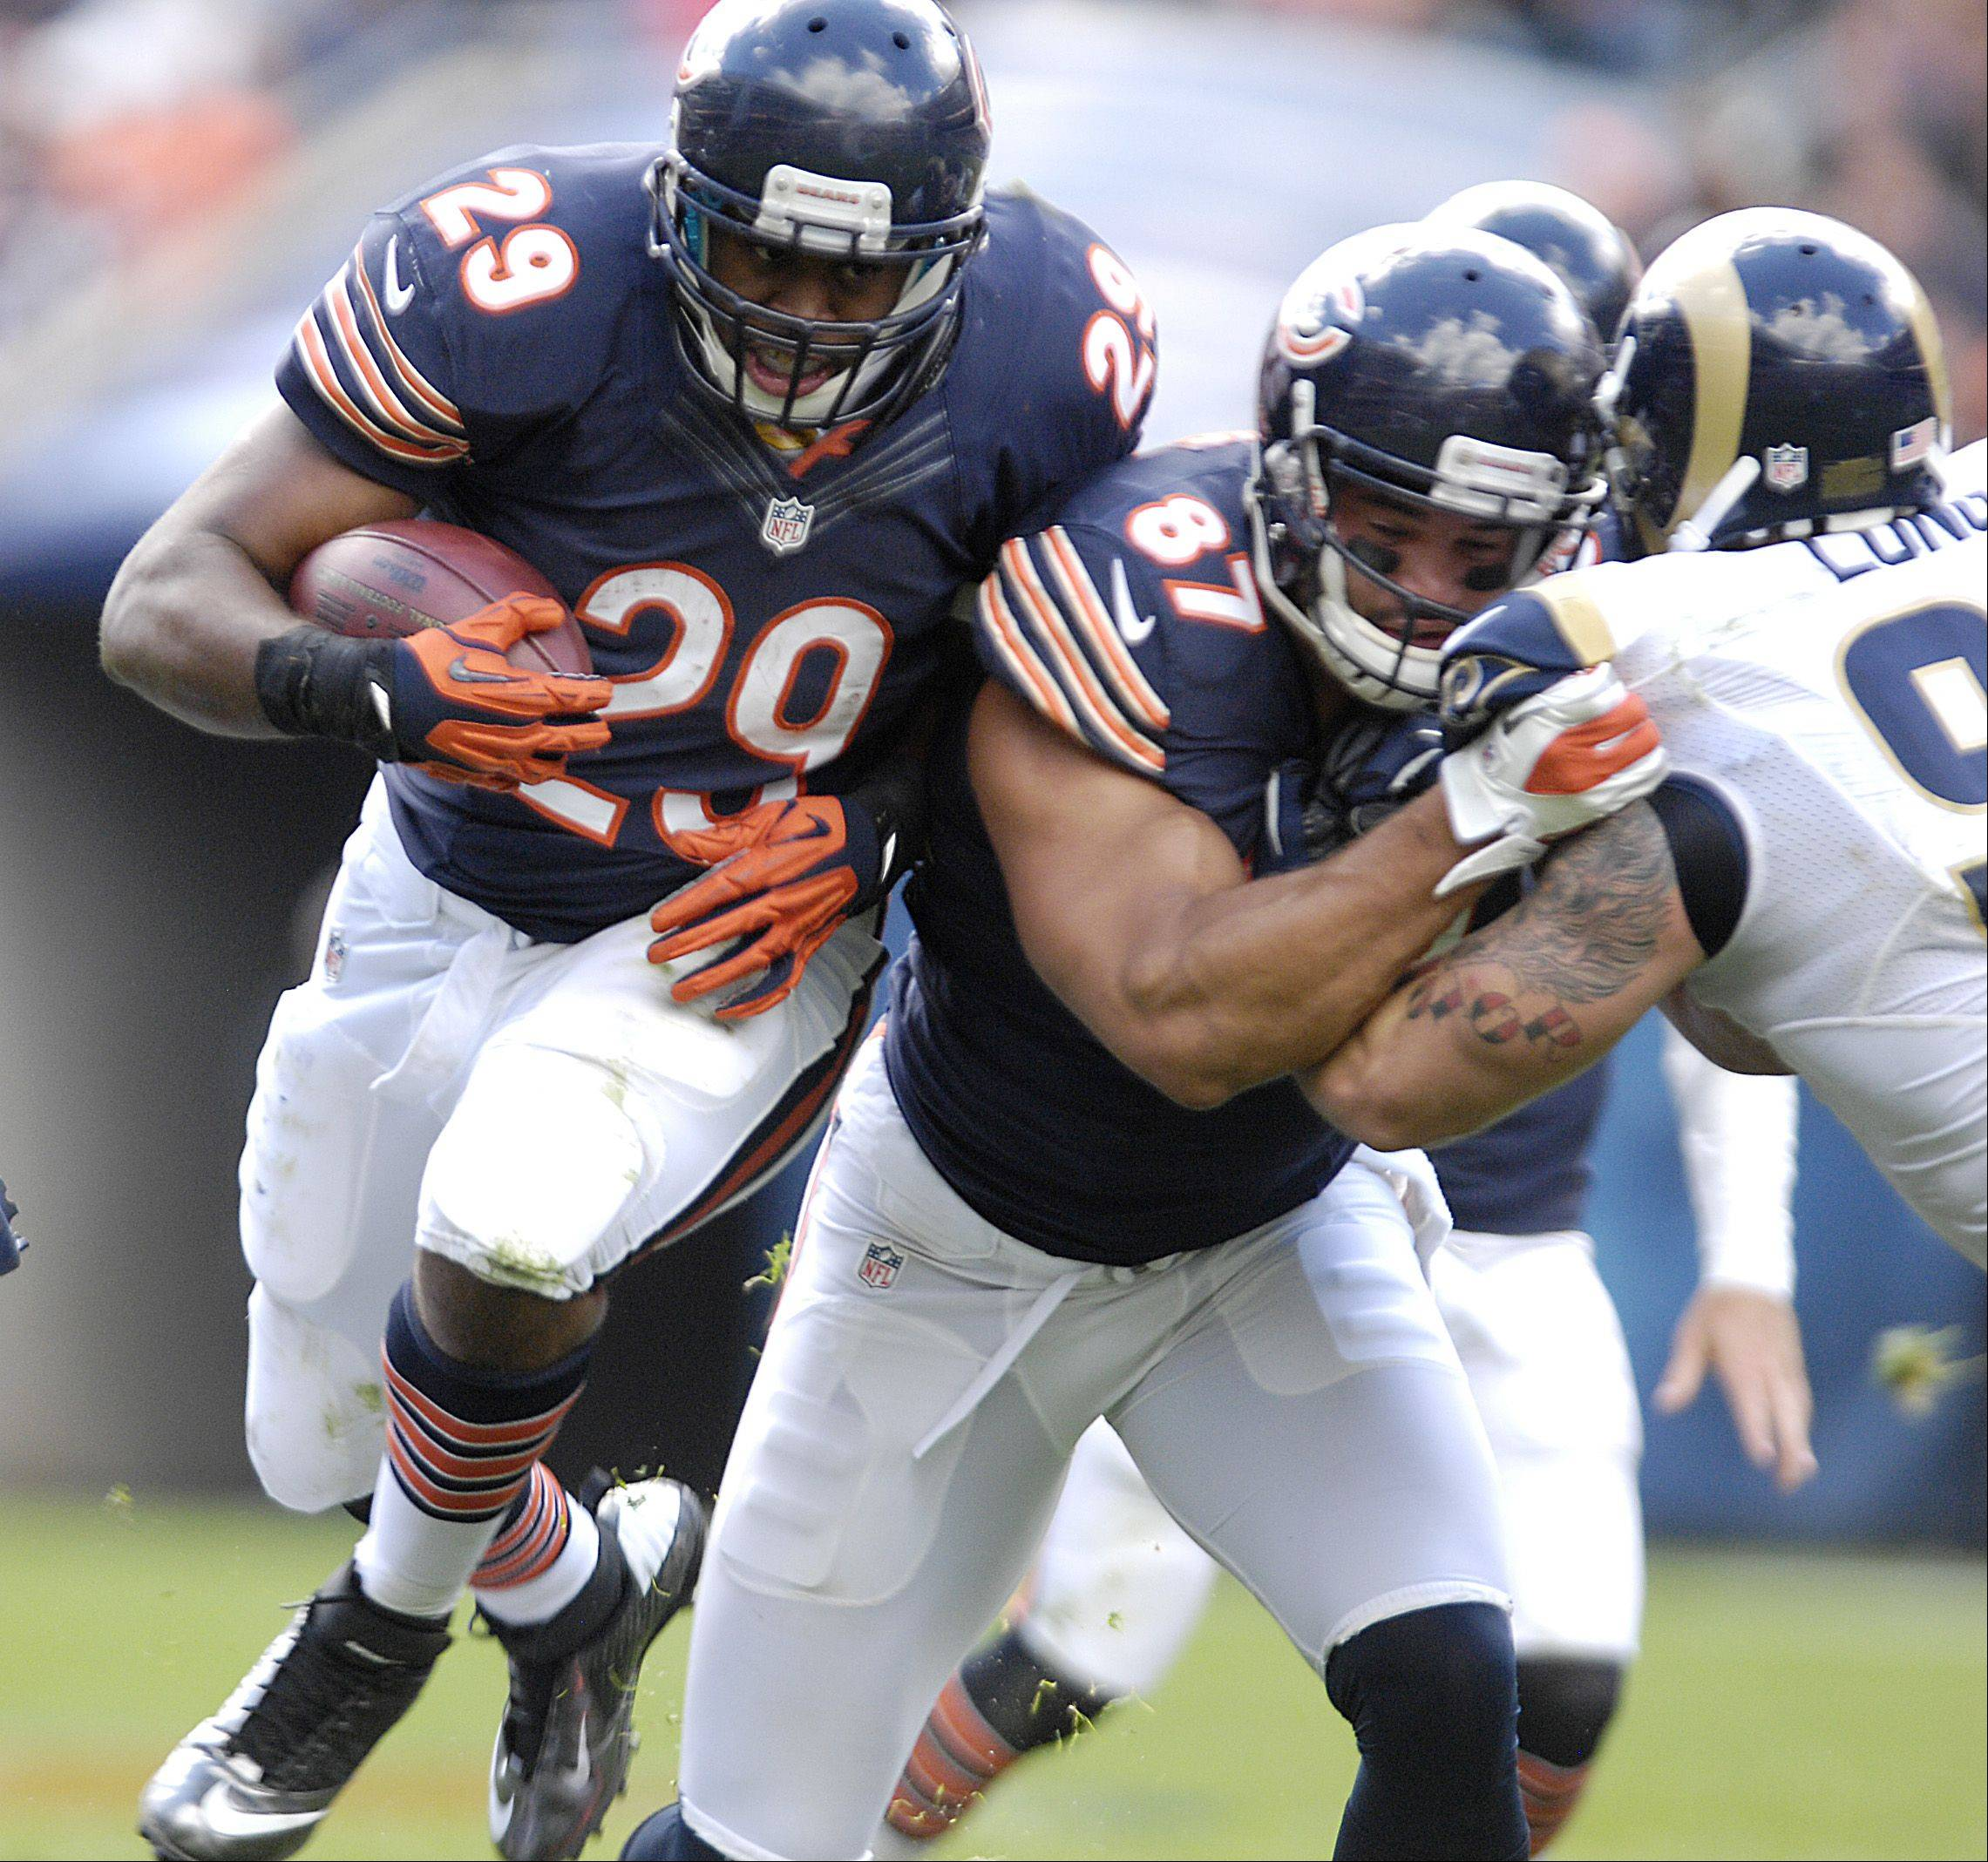 Chicago Bears running back Michael Bush works to gain some yards during play against the St. Louis Rams at Soldier Field in Chicago.